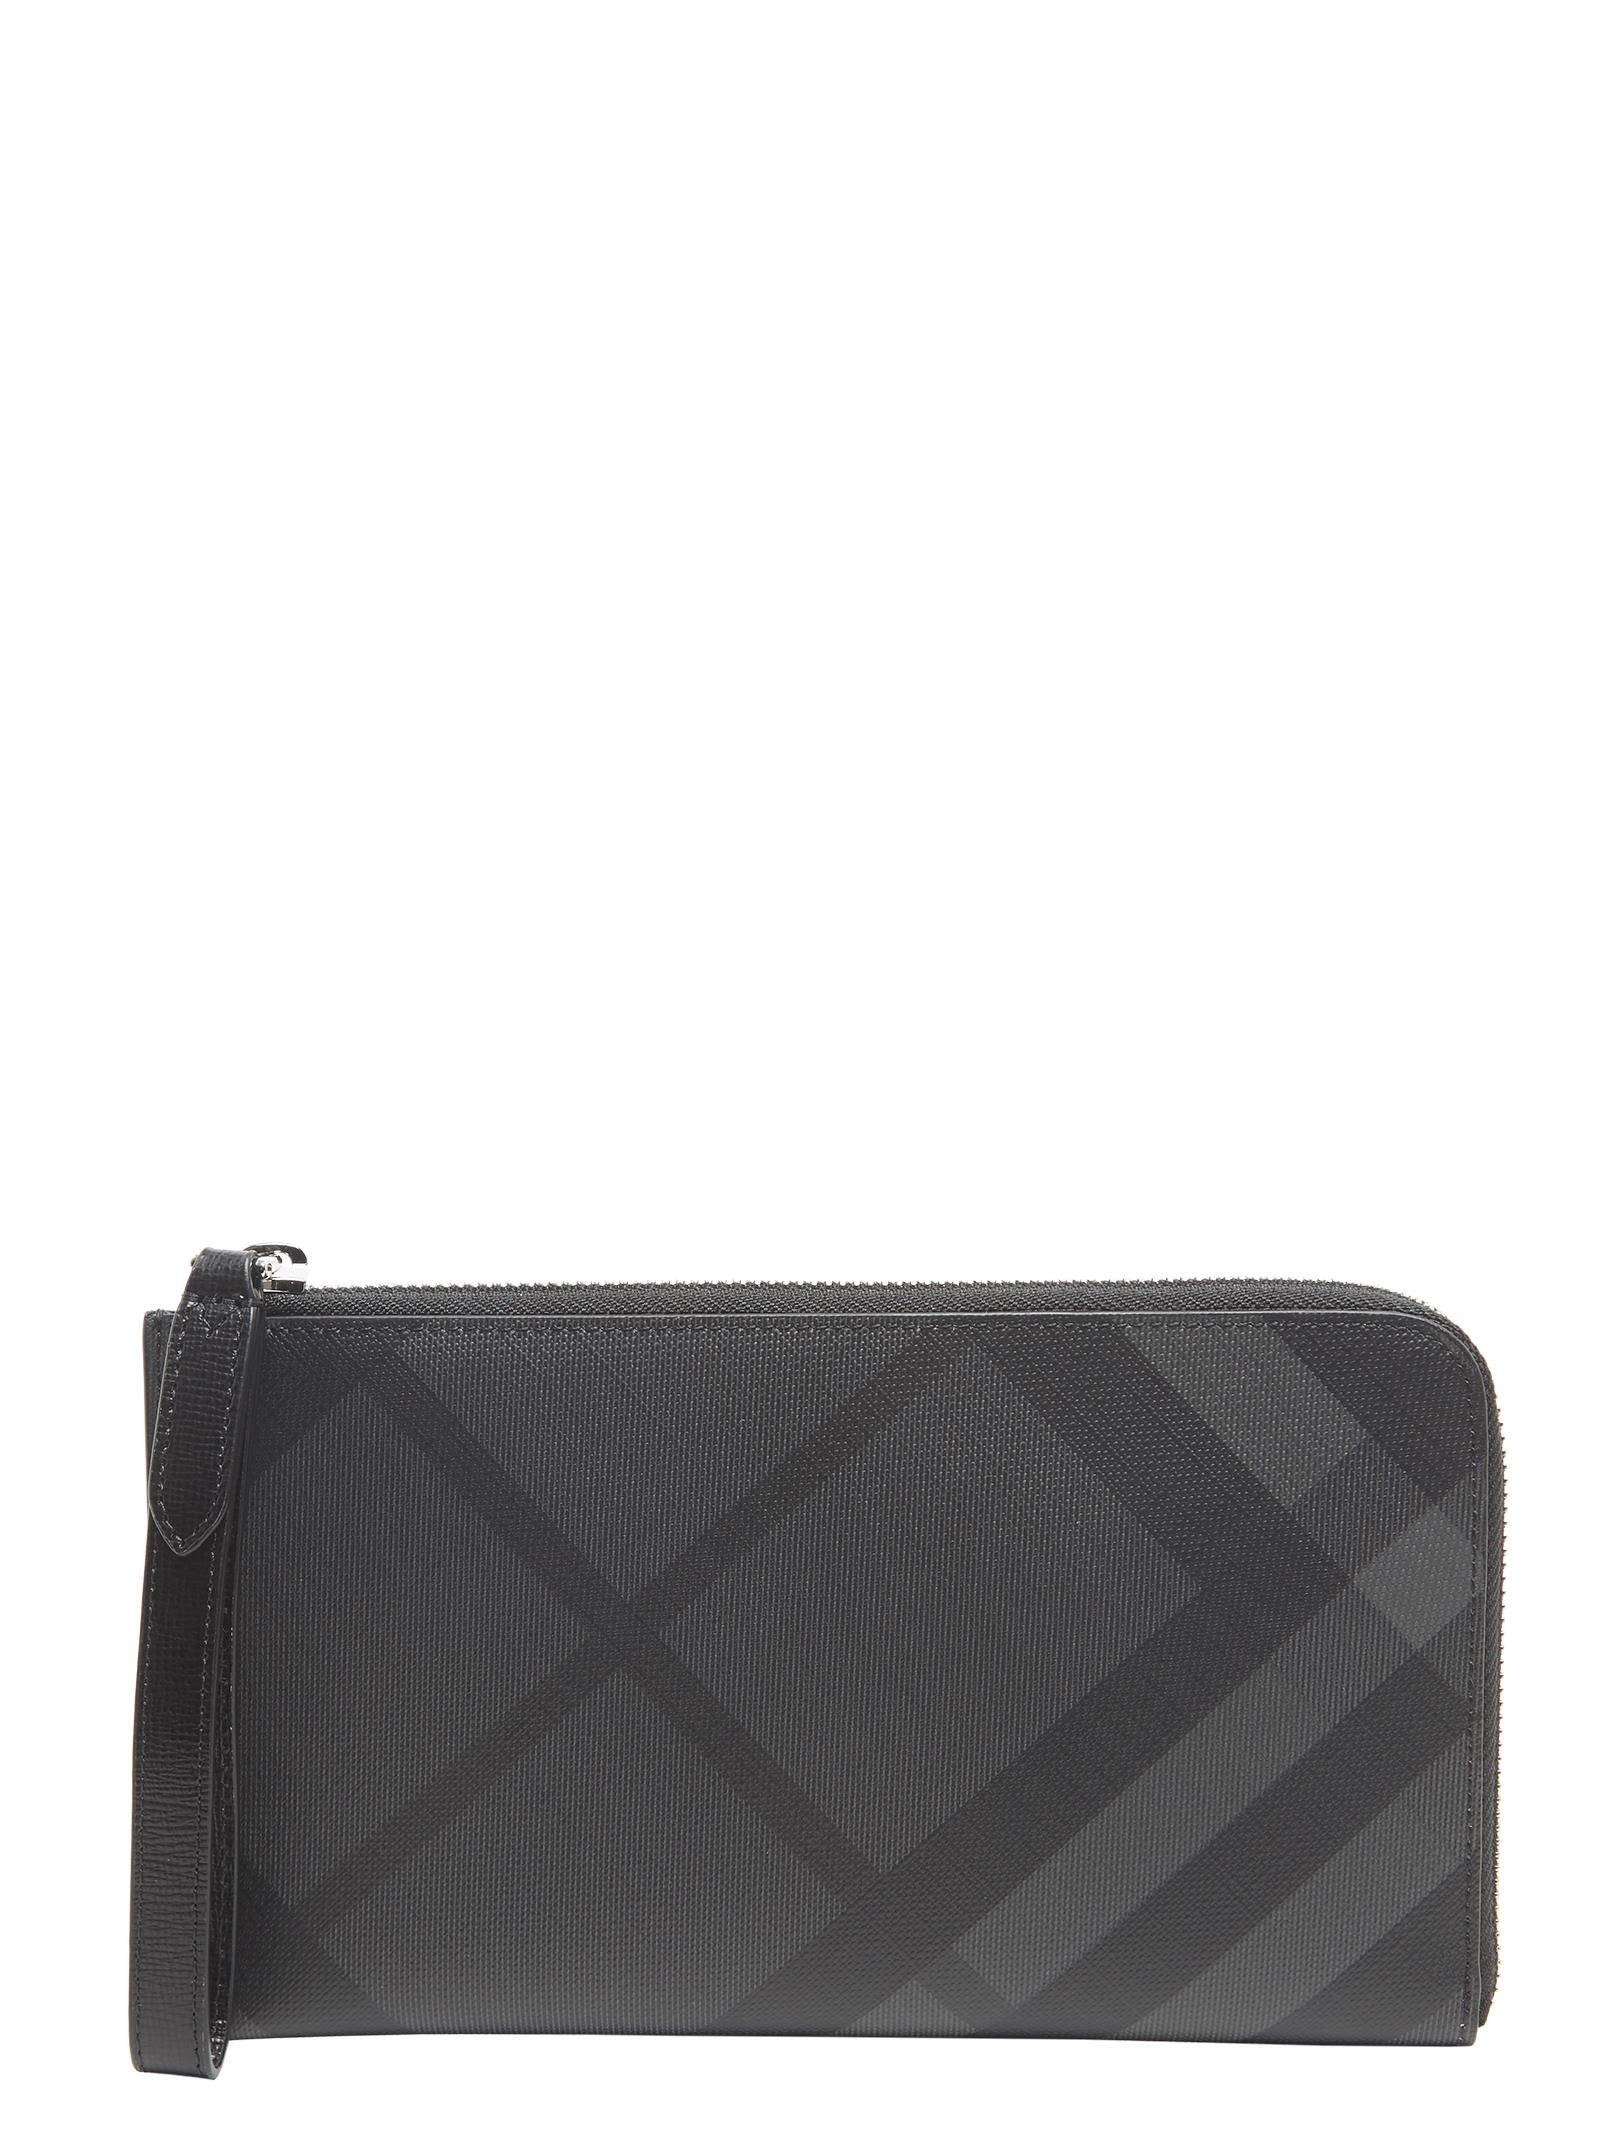 VIDA Statement Clutch - Holiday Pizazz by VIDA kyKaL